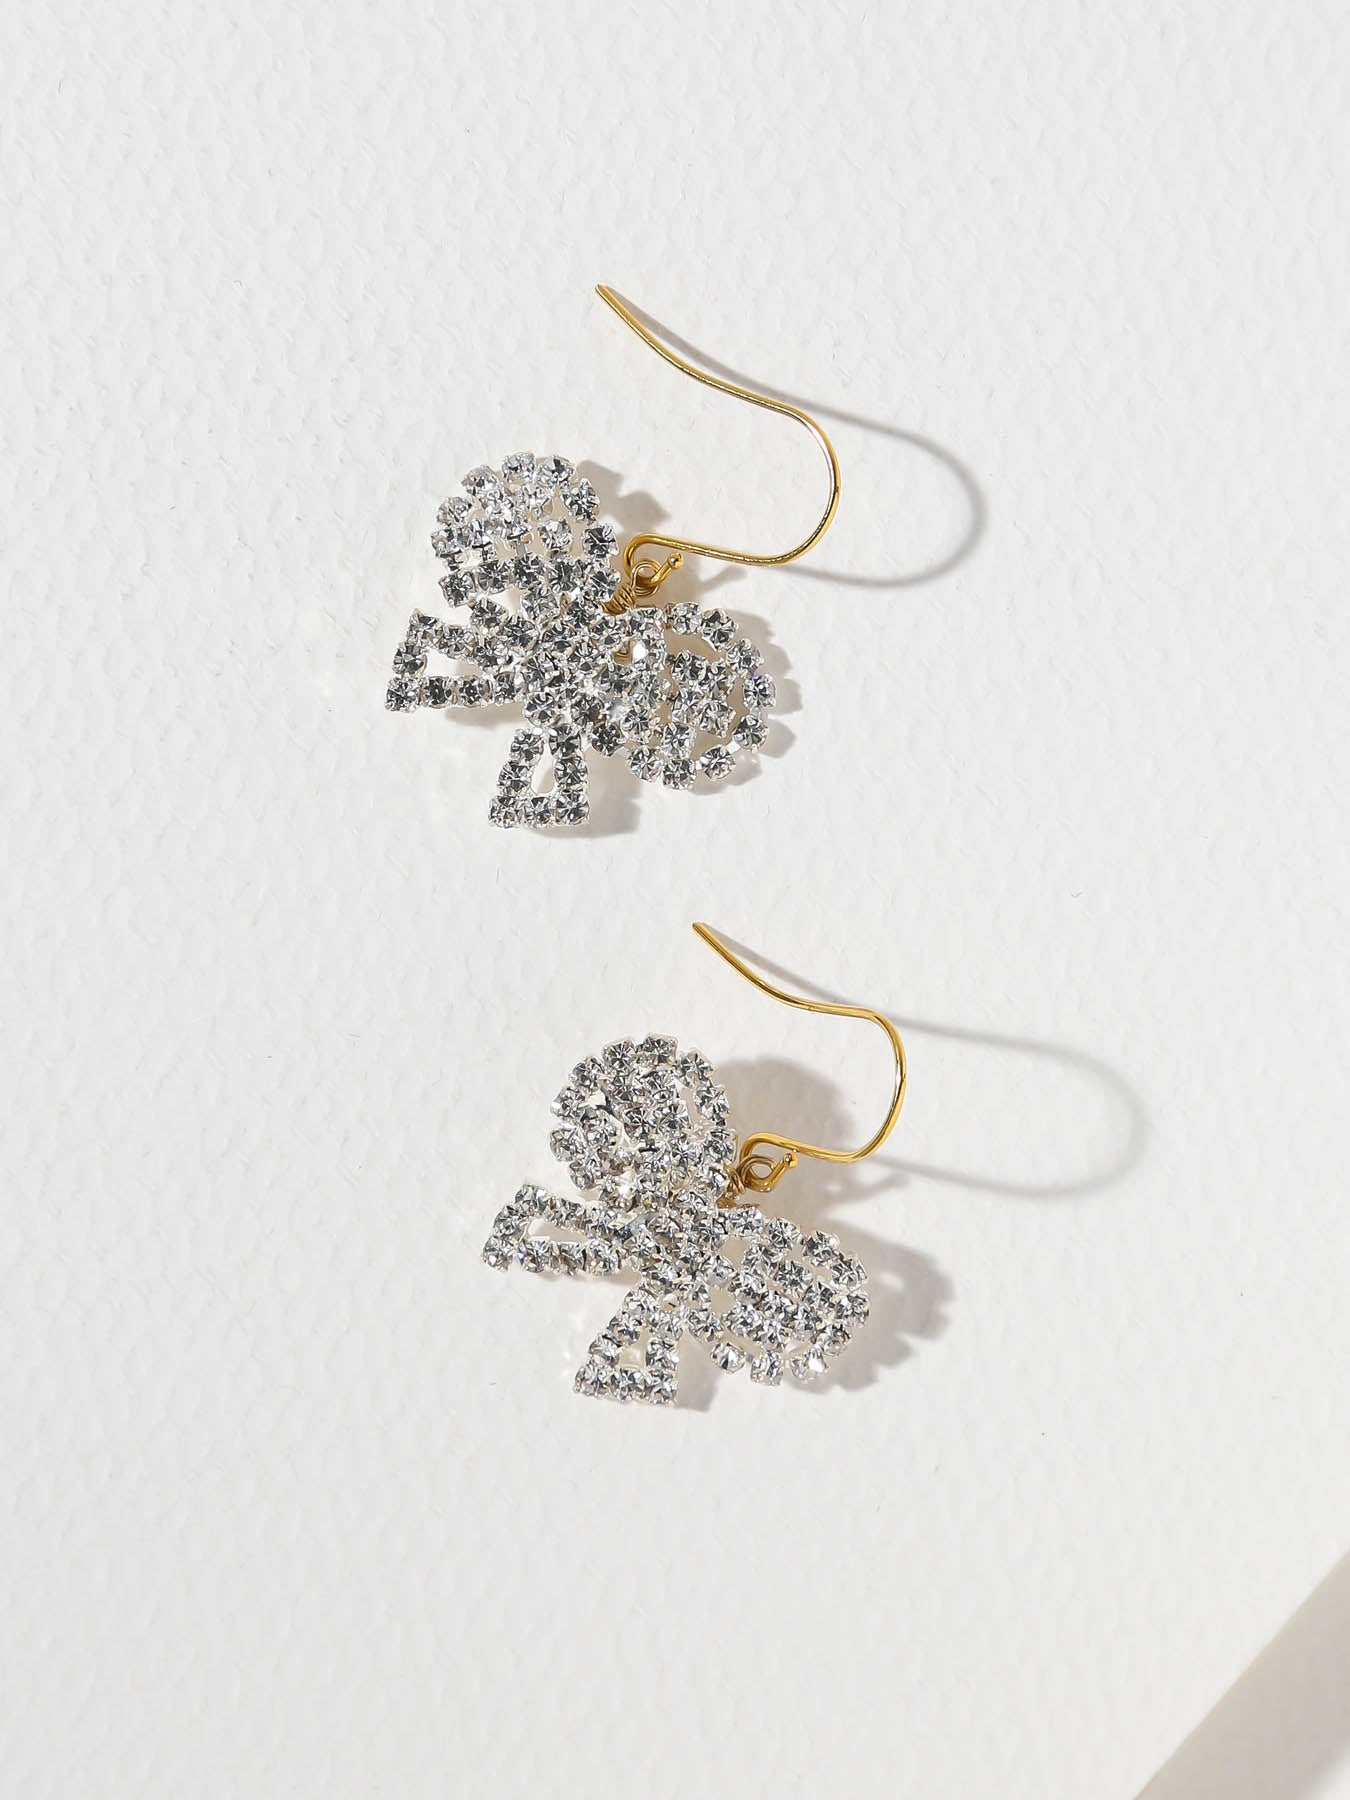 The Sparkle Bow Earrings